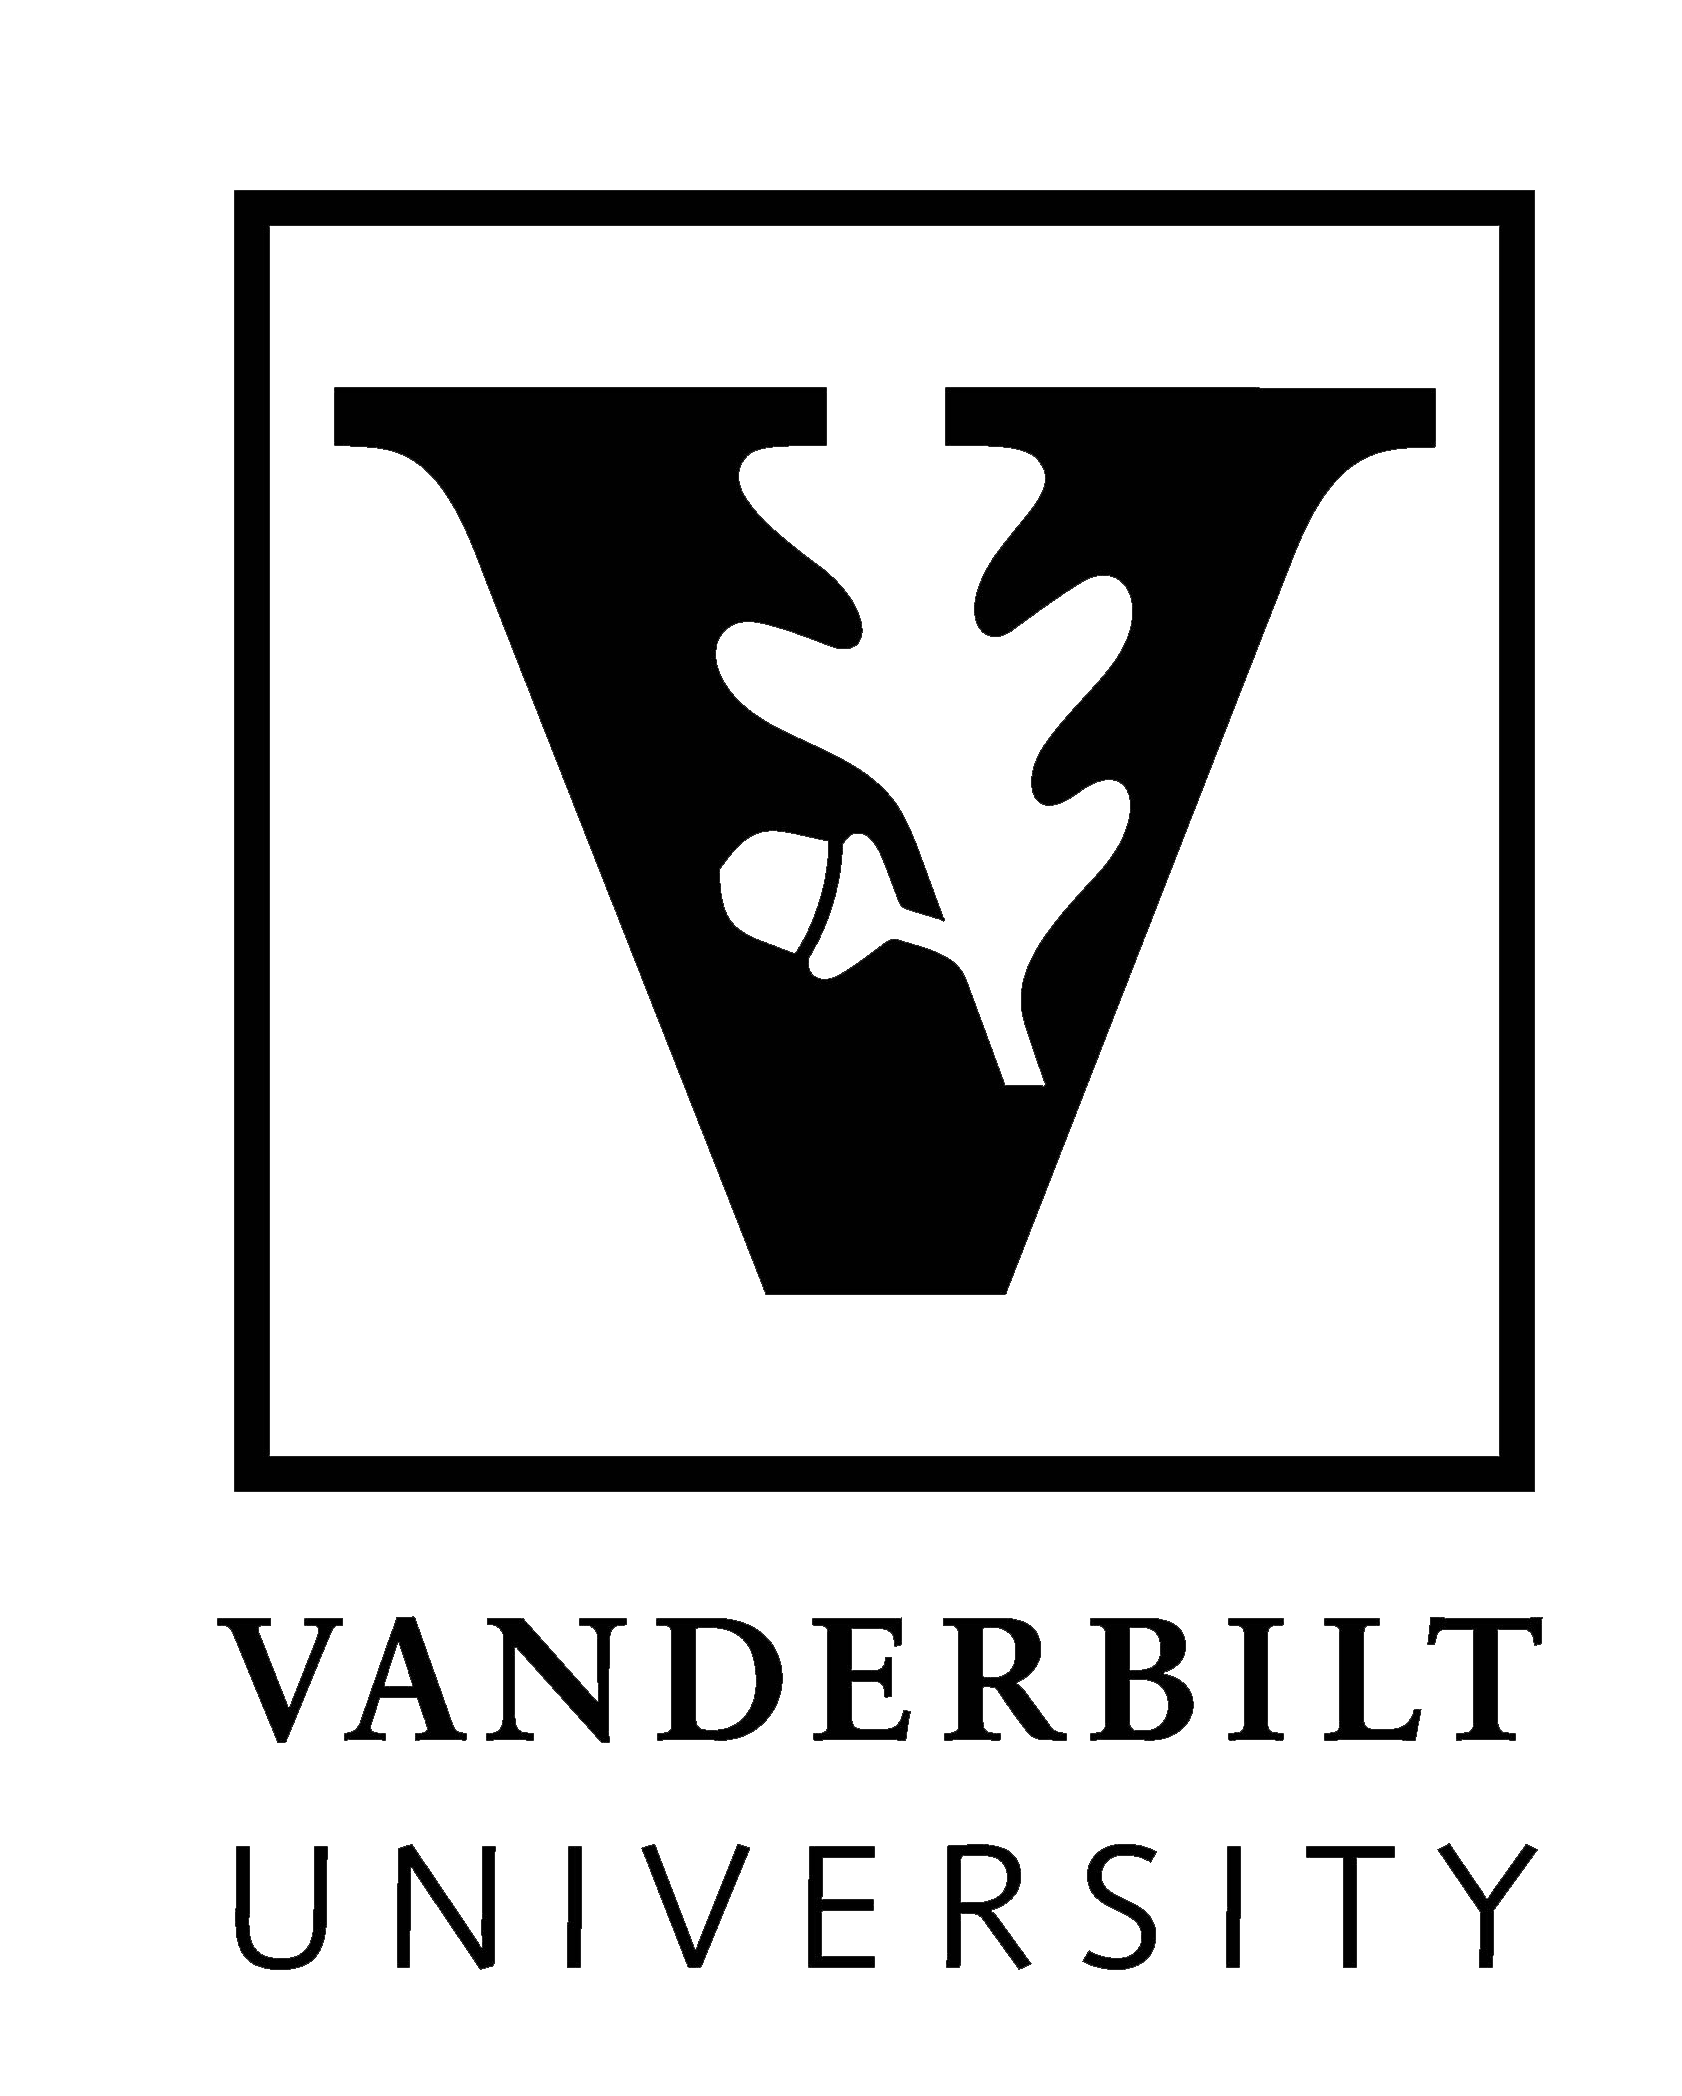 professional writing Vanderbilt logo